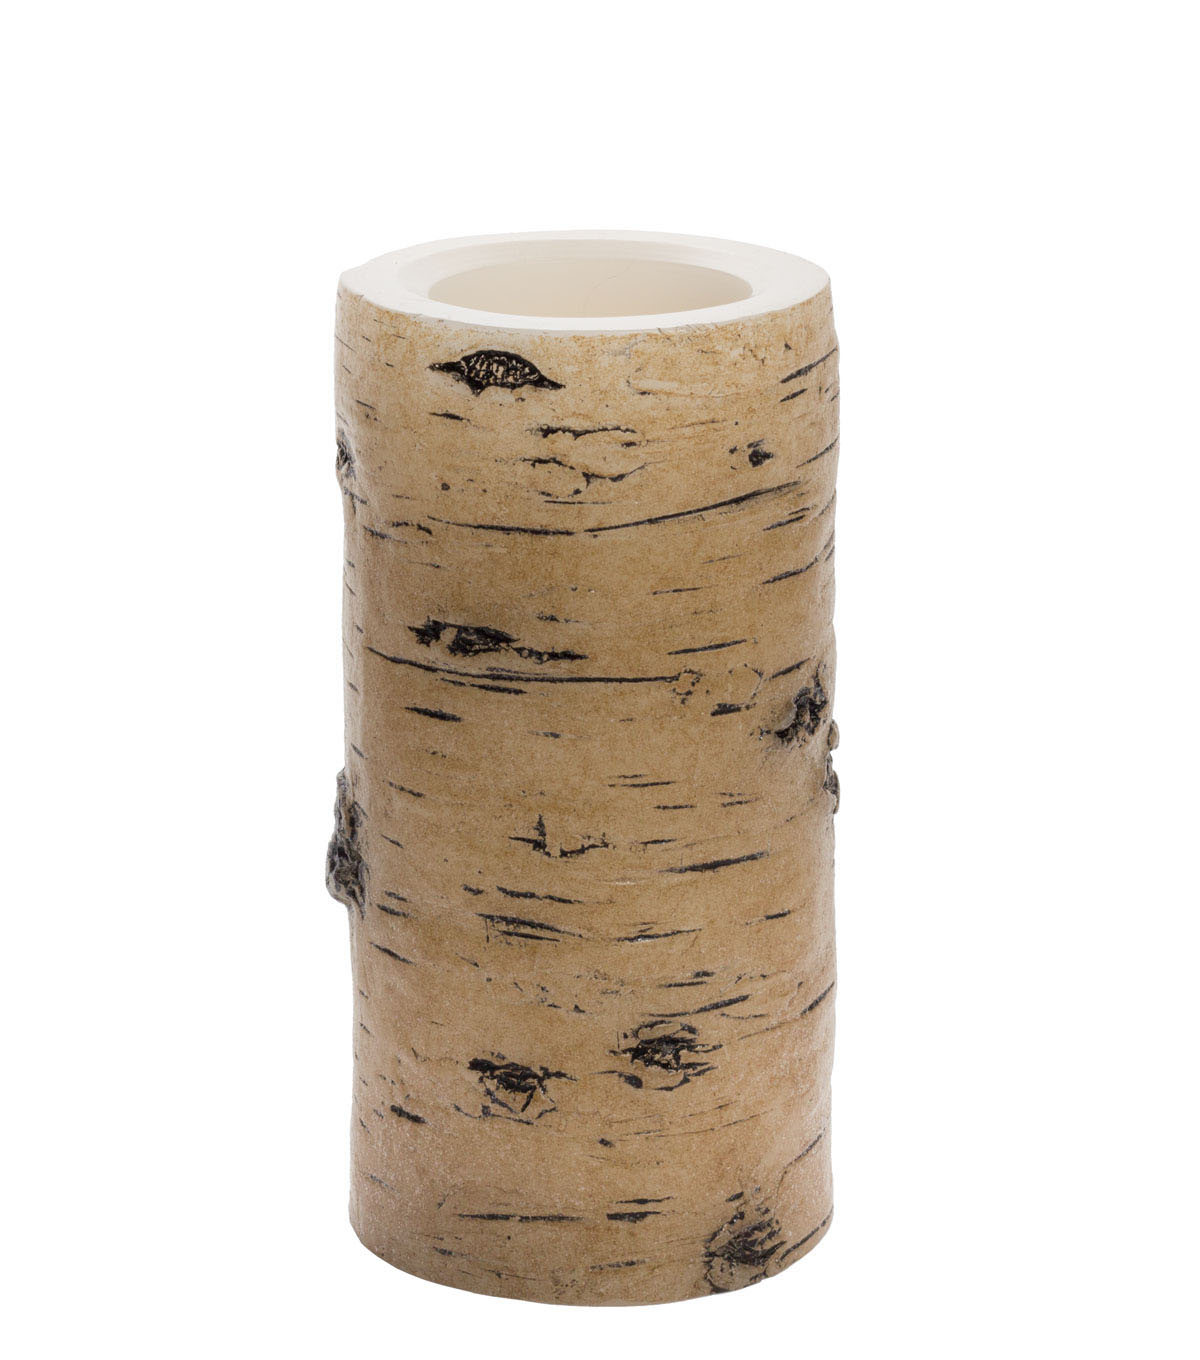 Hudson 43™ Candle & Light Collection 3X6 Tan Birch Bark Pillars With 5 Hour Timer